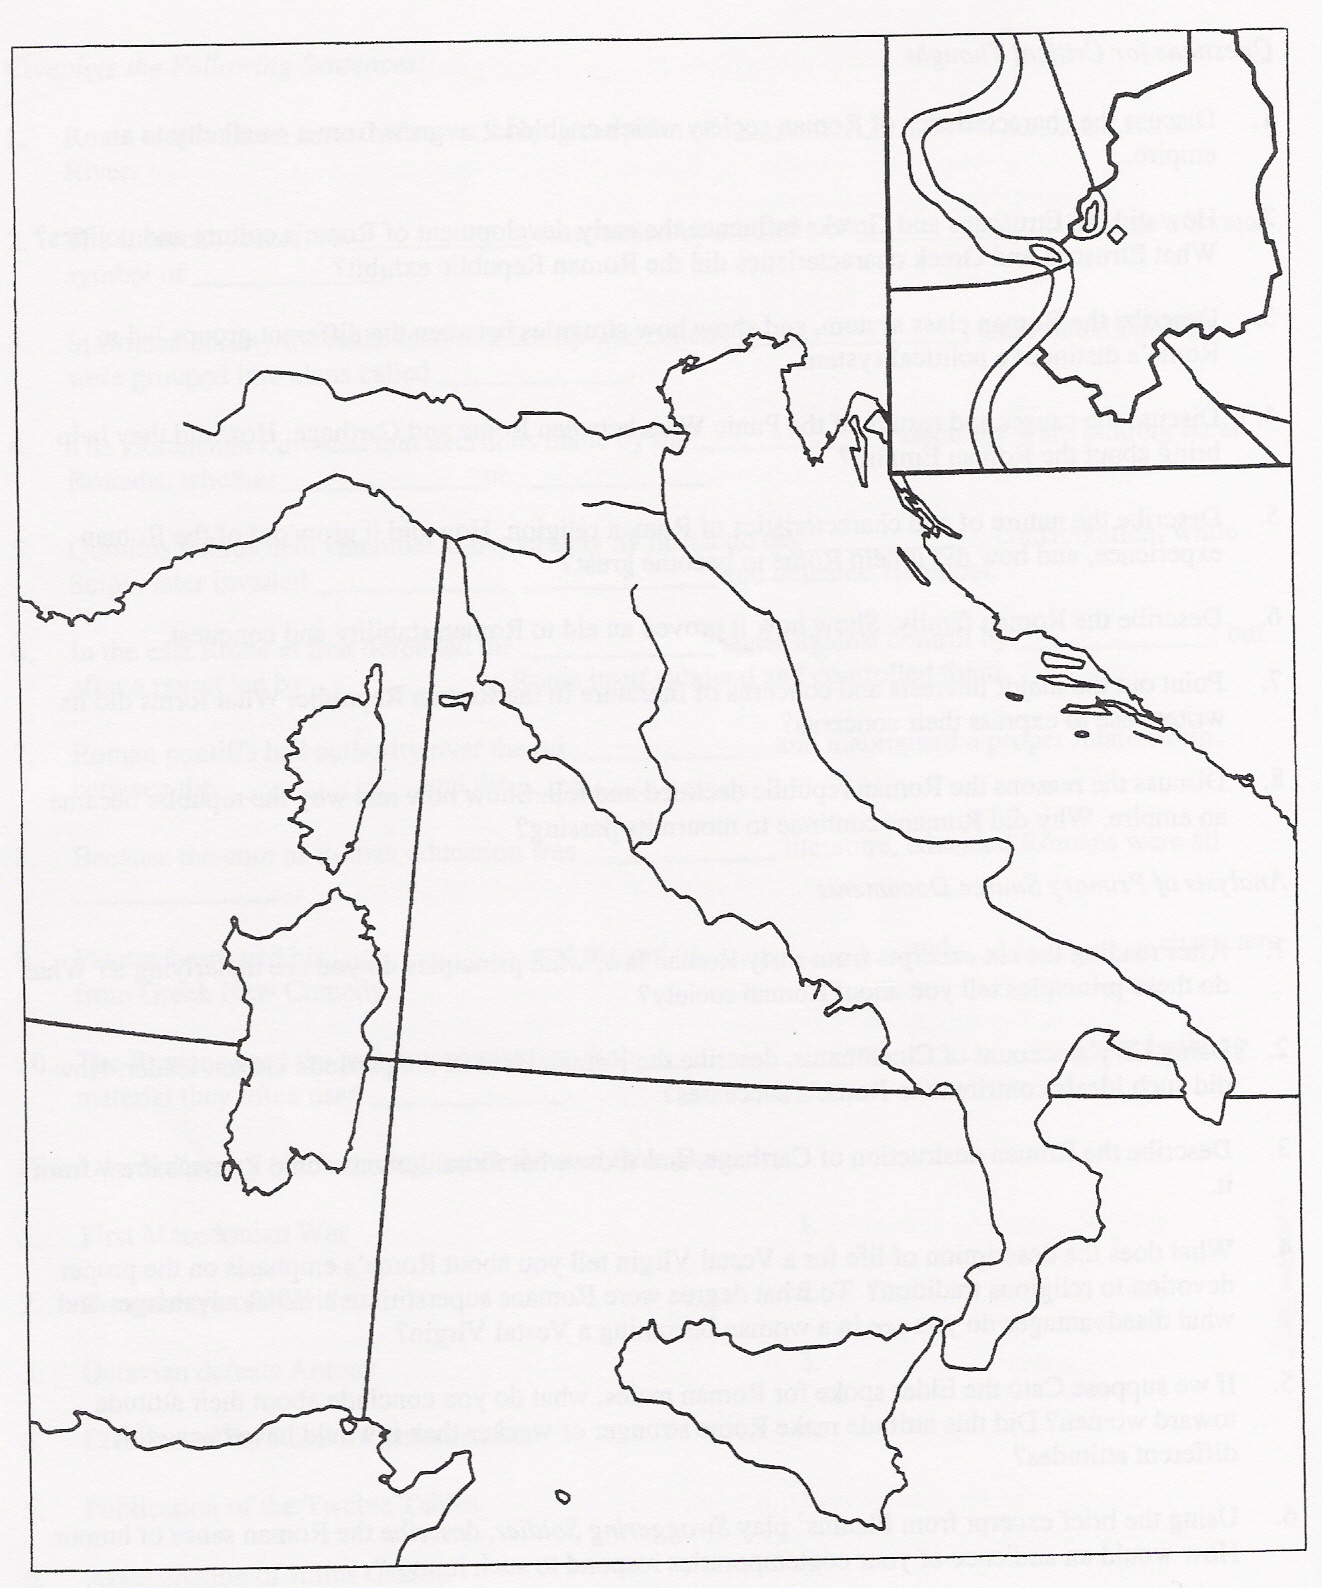 Mr Morris World History Website Early Rome And The - Ancient rome map tiber river